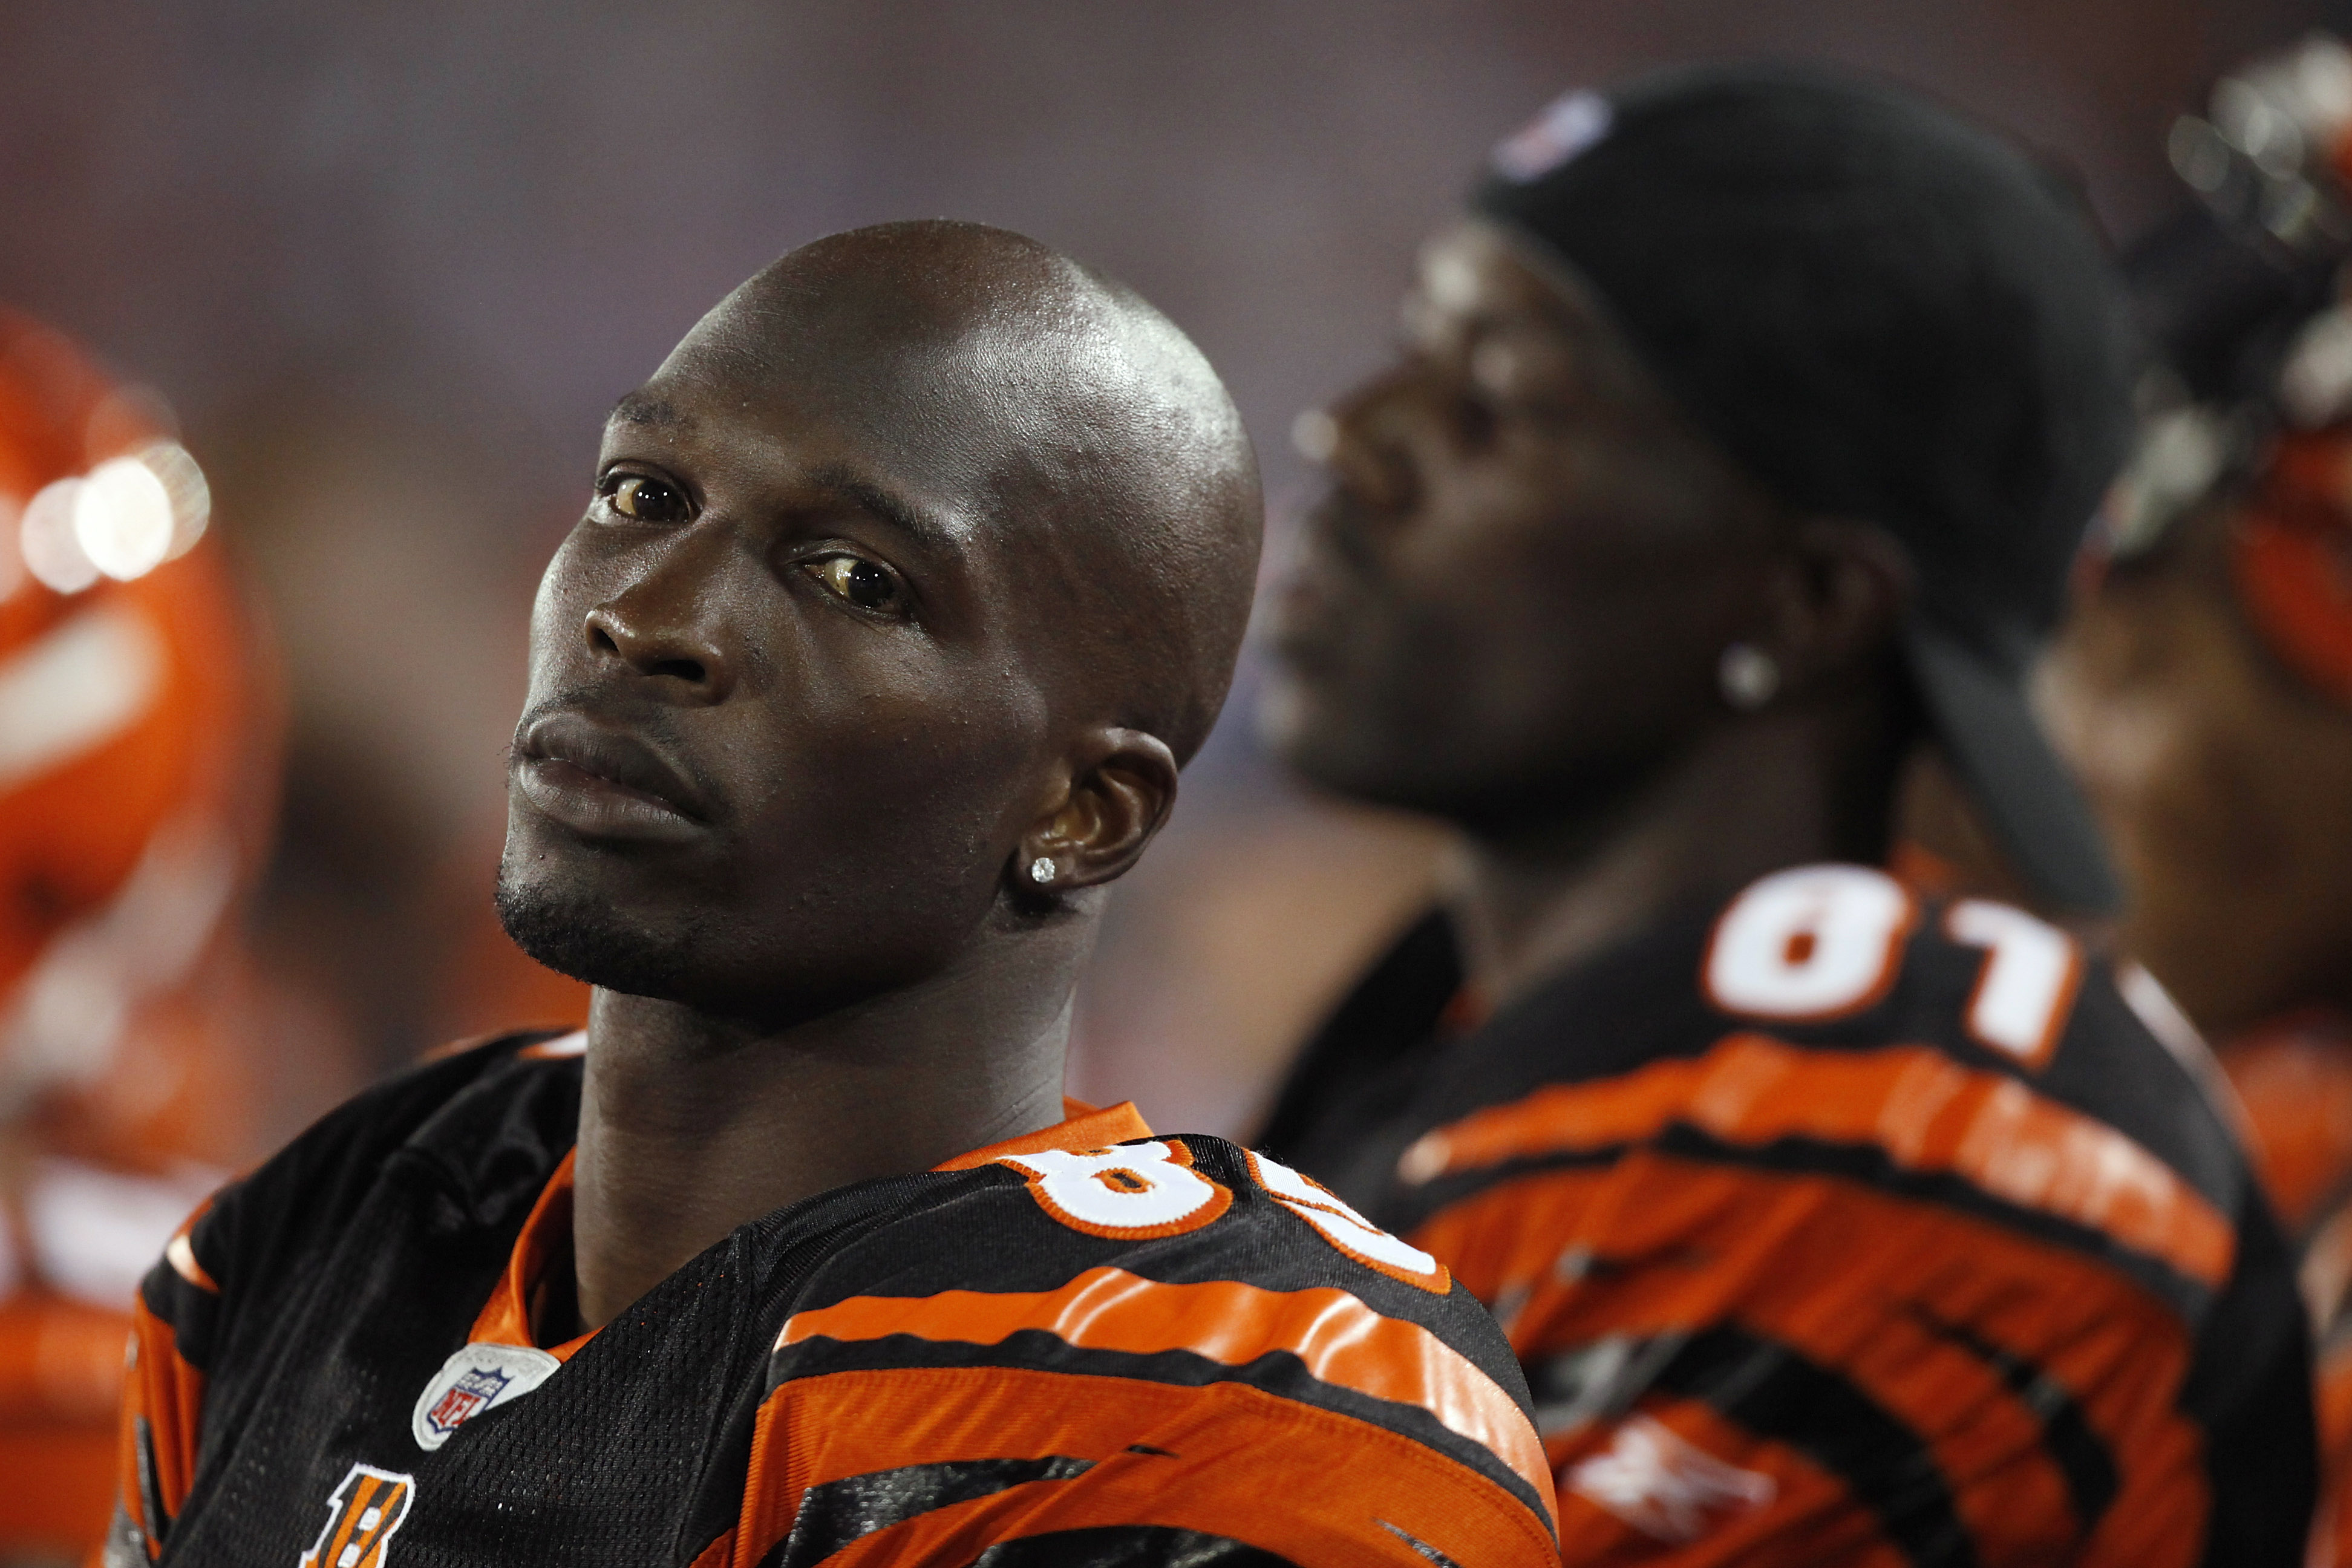 CANTON, OH - AUGUST 8: Chad Ochocinco #85 and Terrell Owens #81 of the Cincinnati Bengals look on against the Dallas Cowboys during the 2010 Pro Football Hall of Fame Game at the Pro Football Hall of Fame Field at Fawcett Stadium on August 8, 2010 in Cant